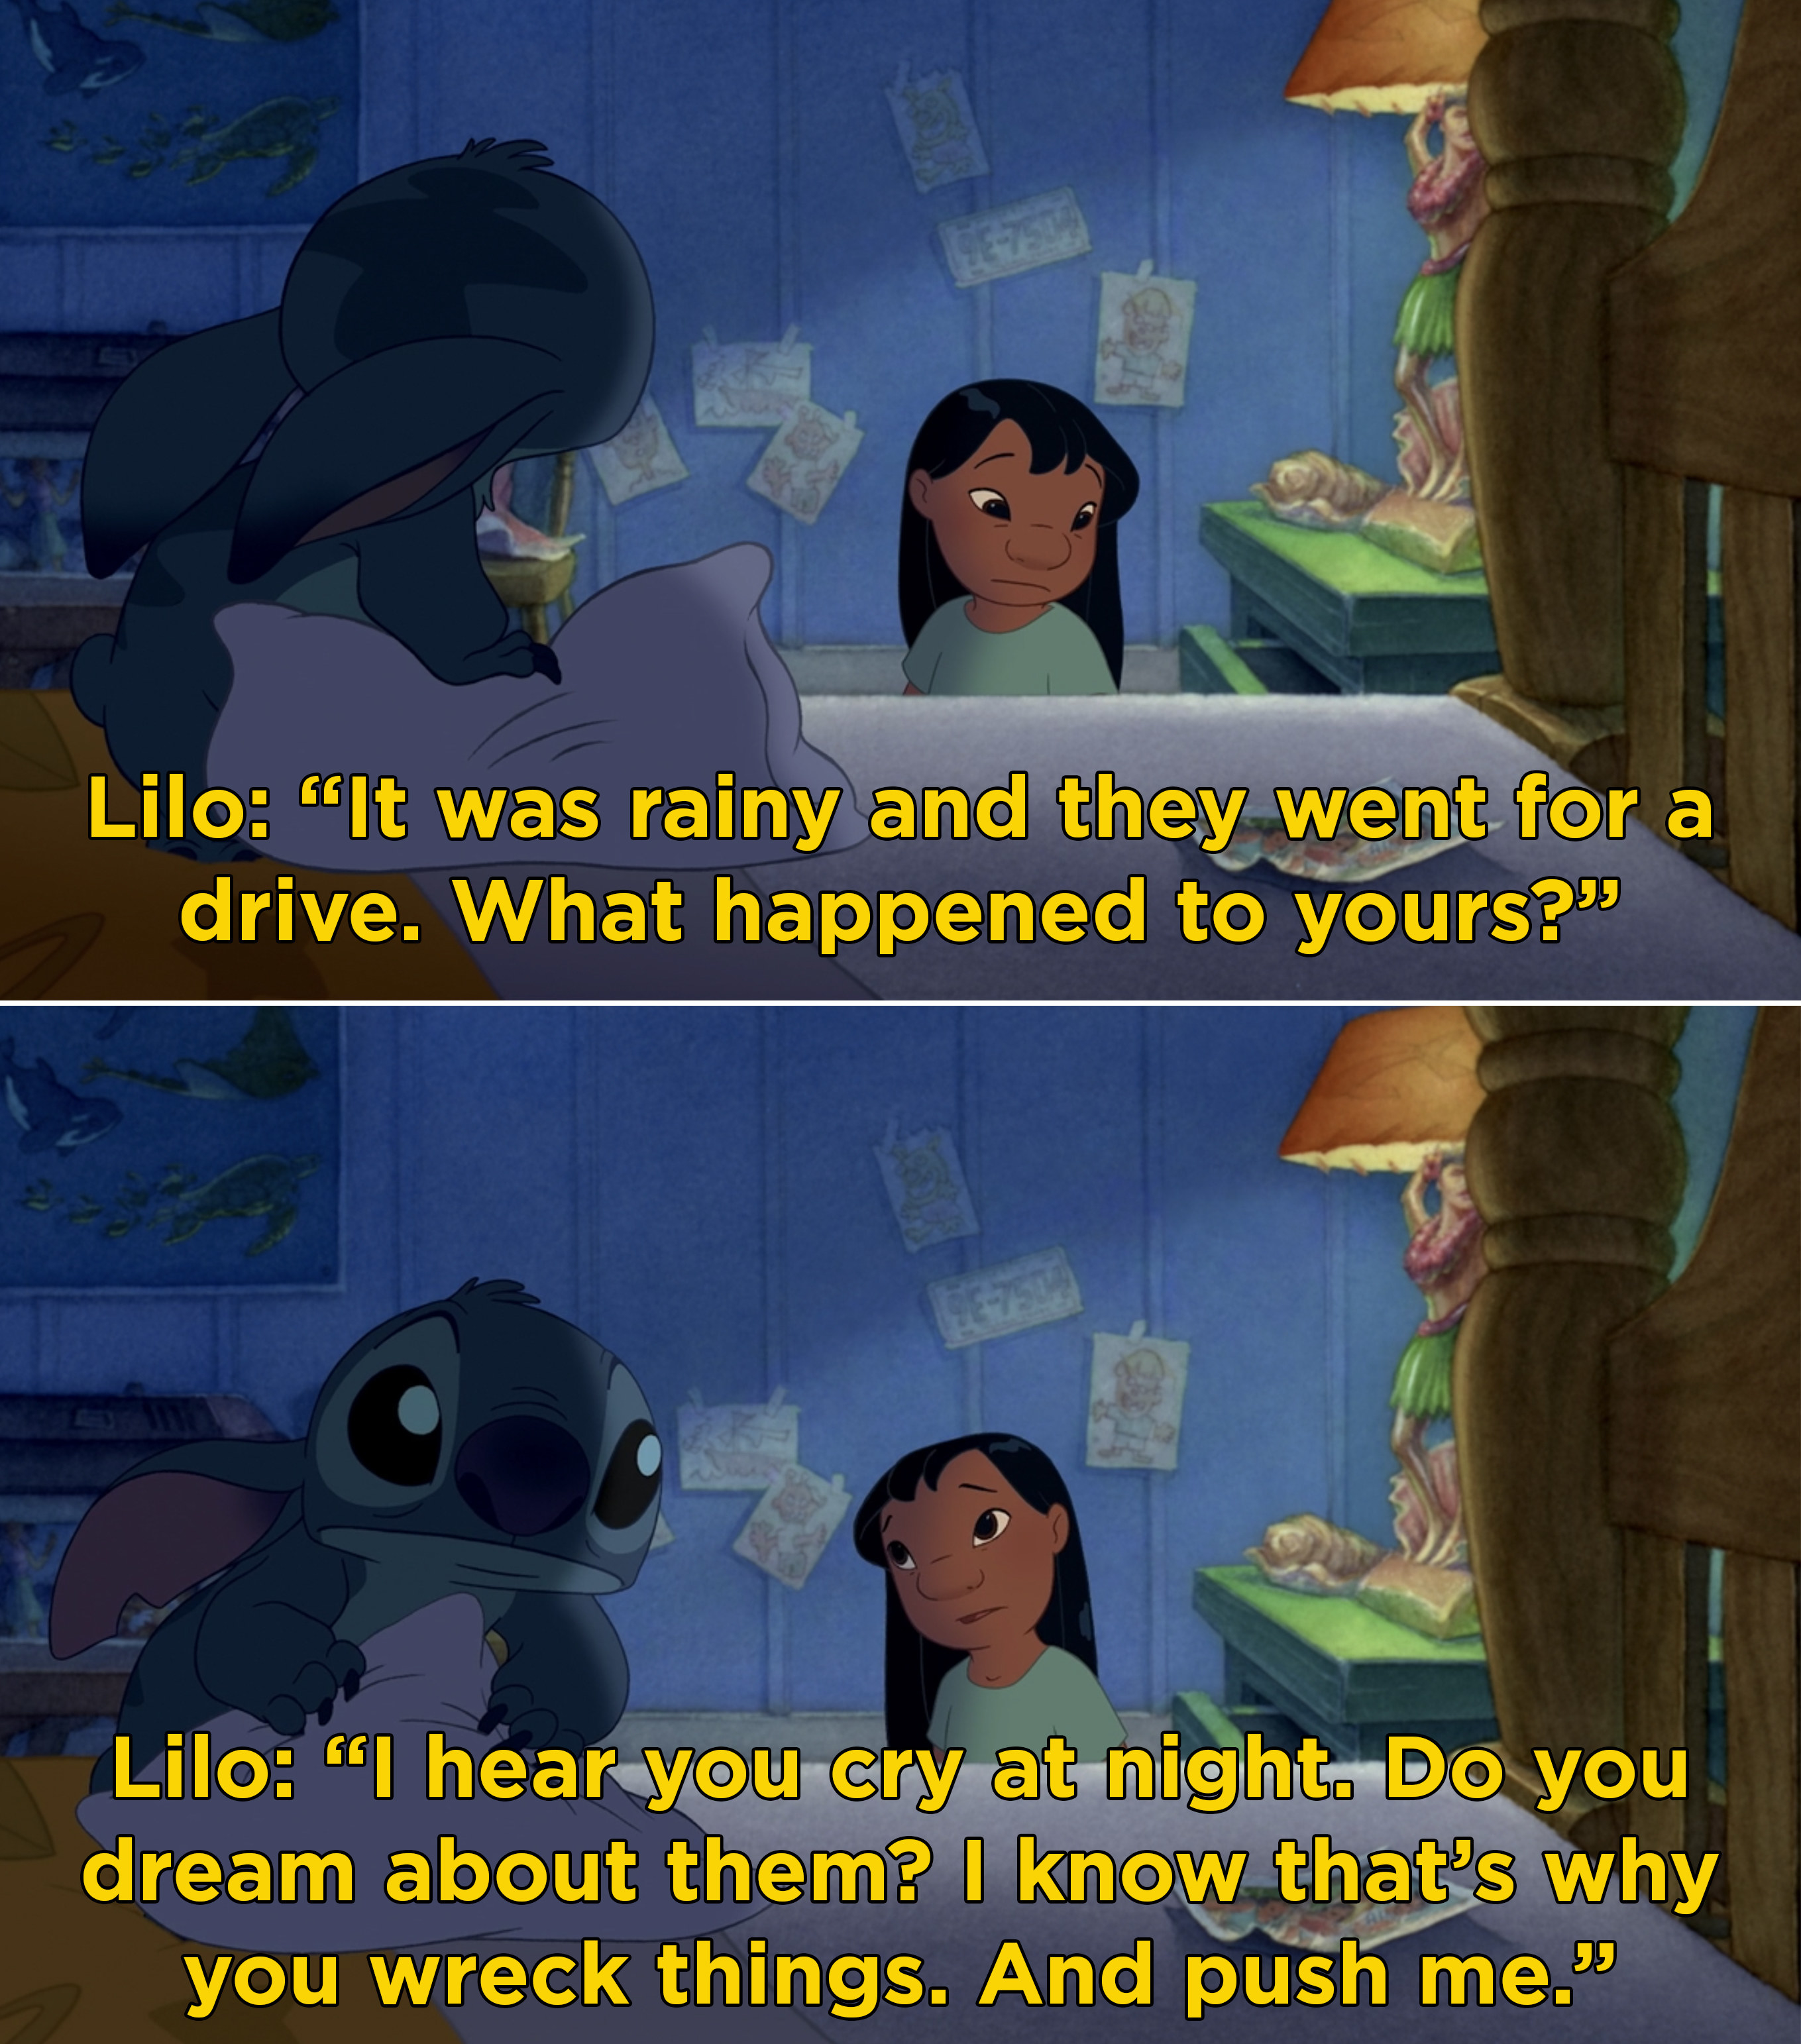 Lilo telling Stitch that her parents died while driving in the rain and that she understands why he is sad all the time